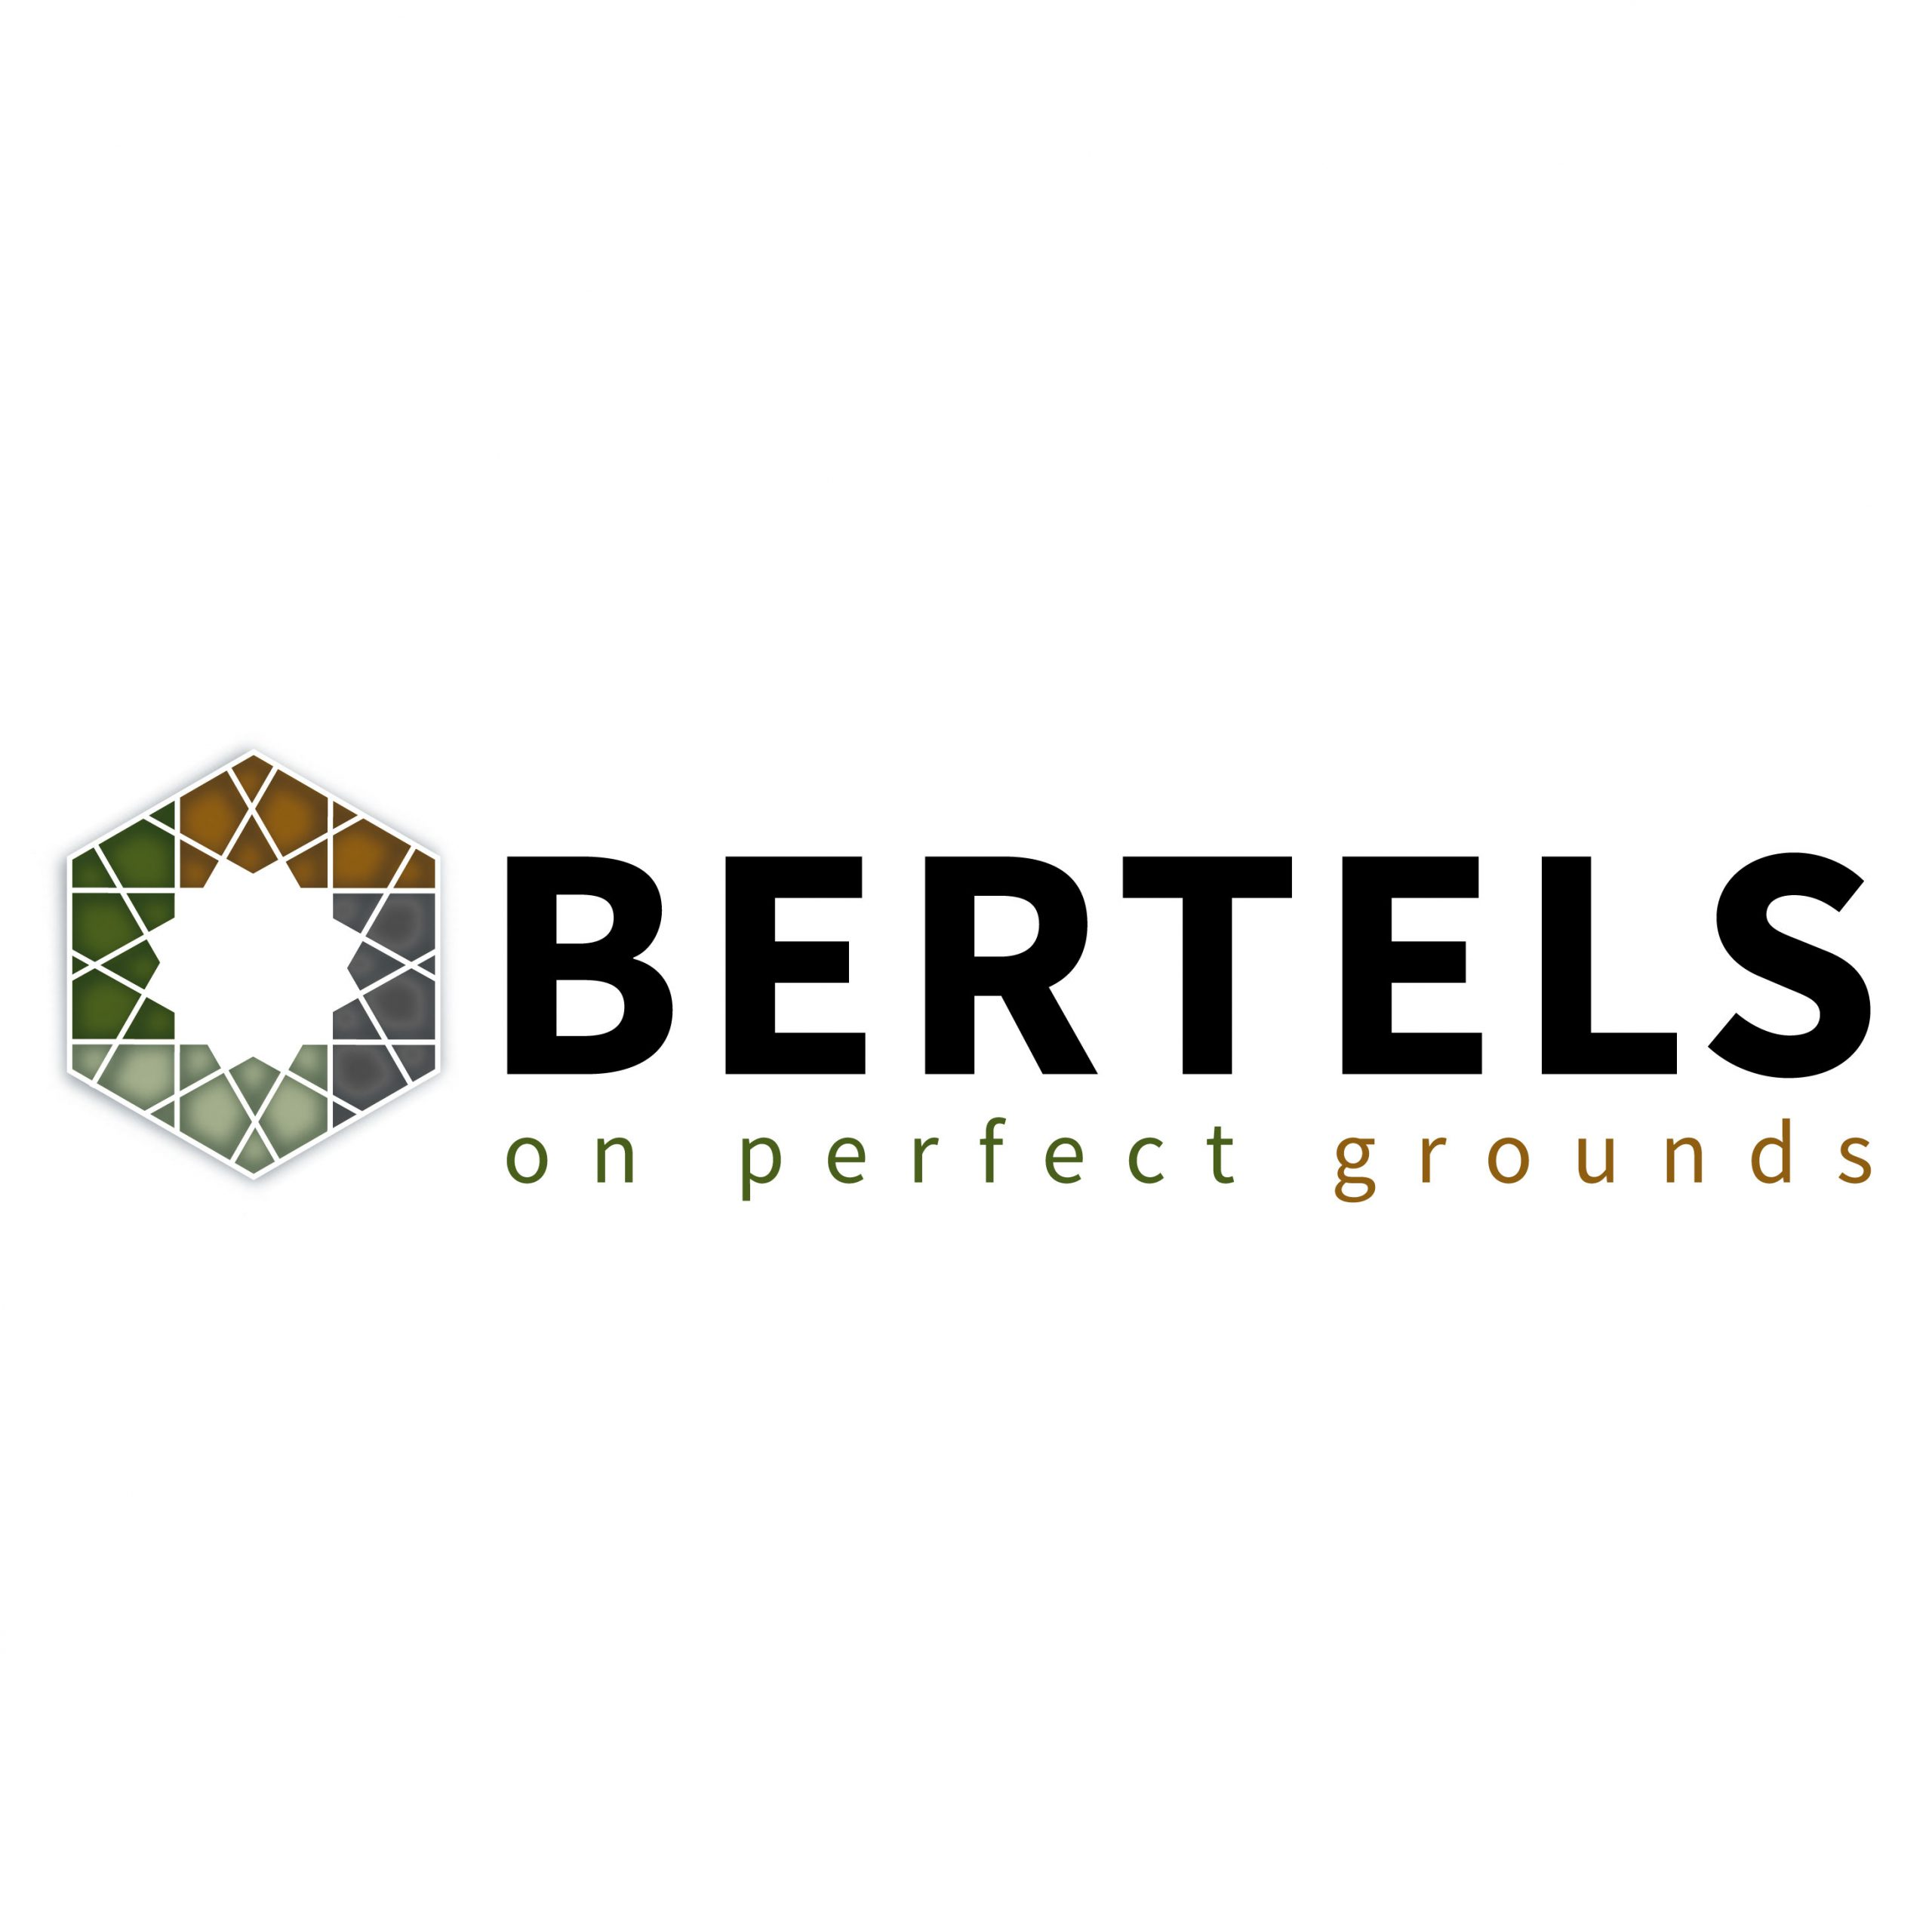 Bertels on perfect grounds